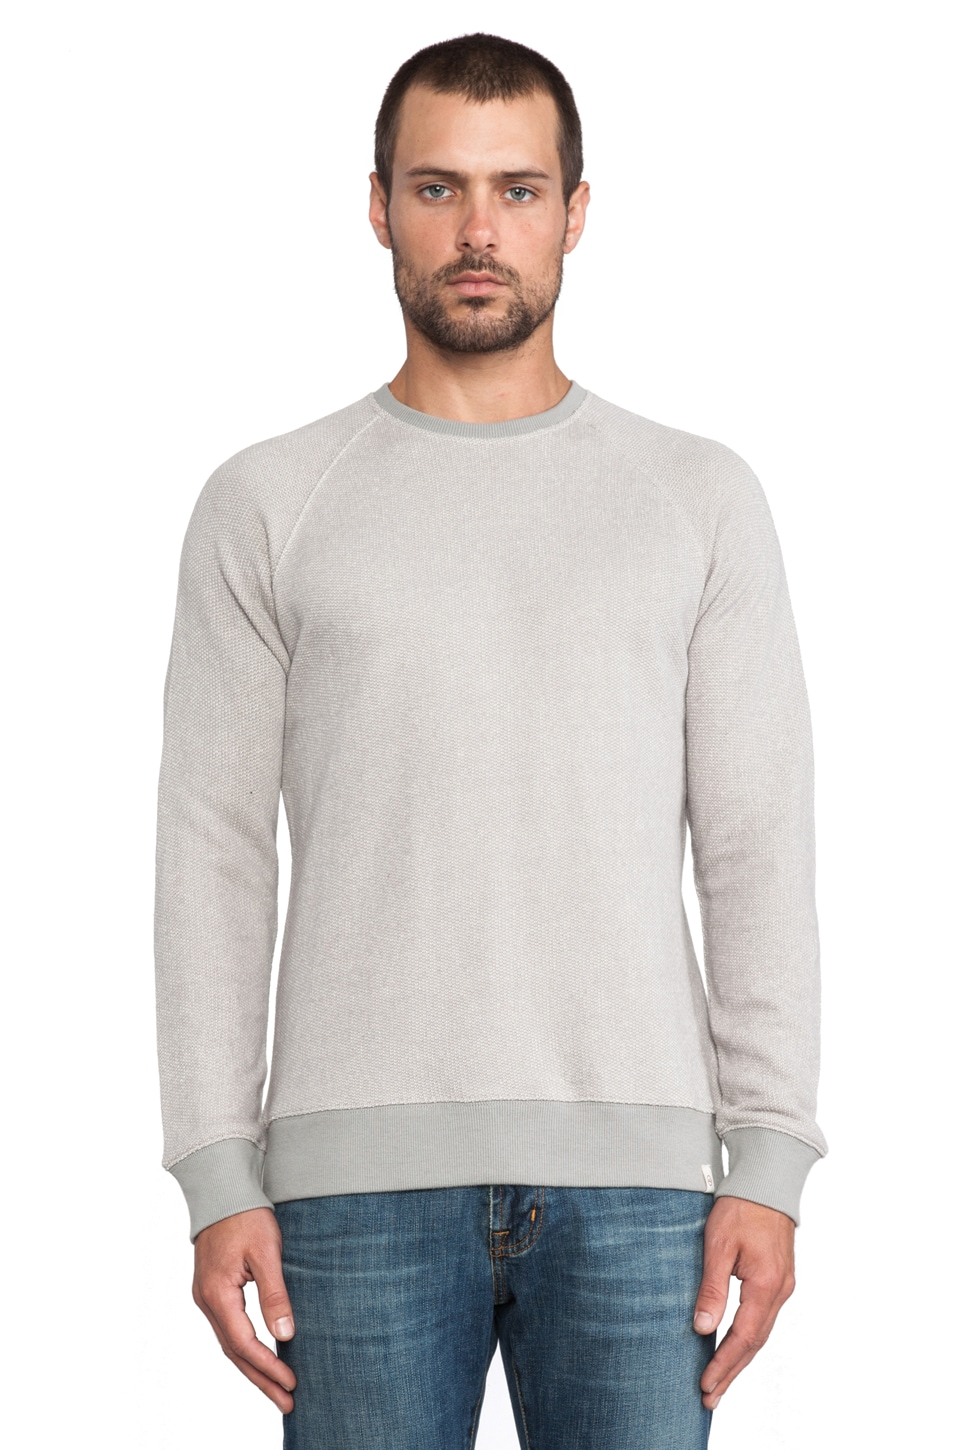 AG Adriano Goldschmied Notch Sweater in Gull Grey